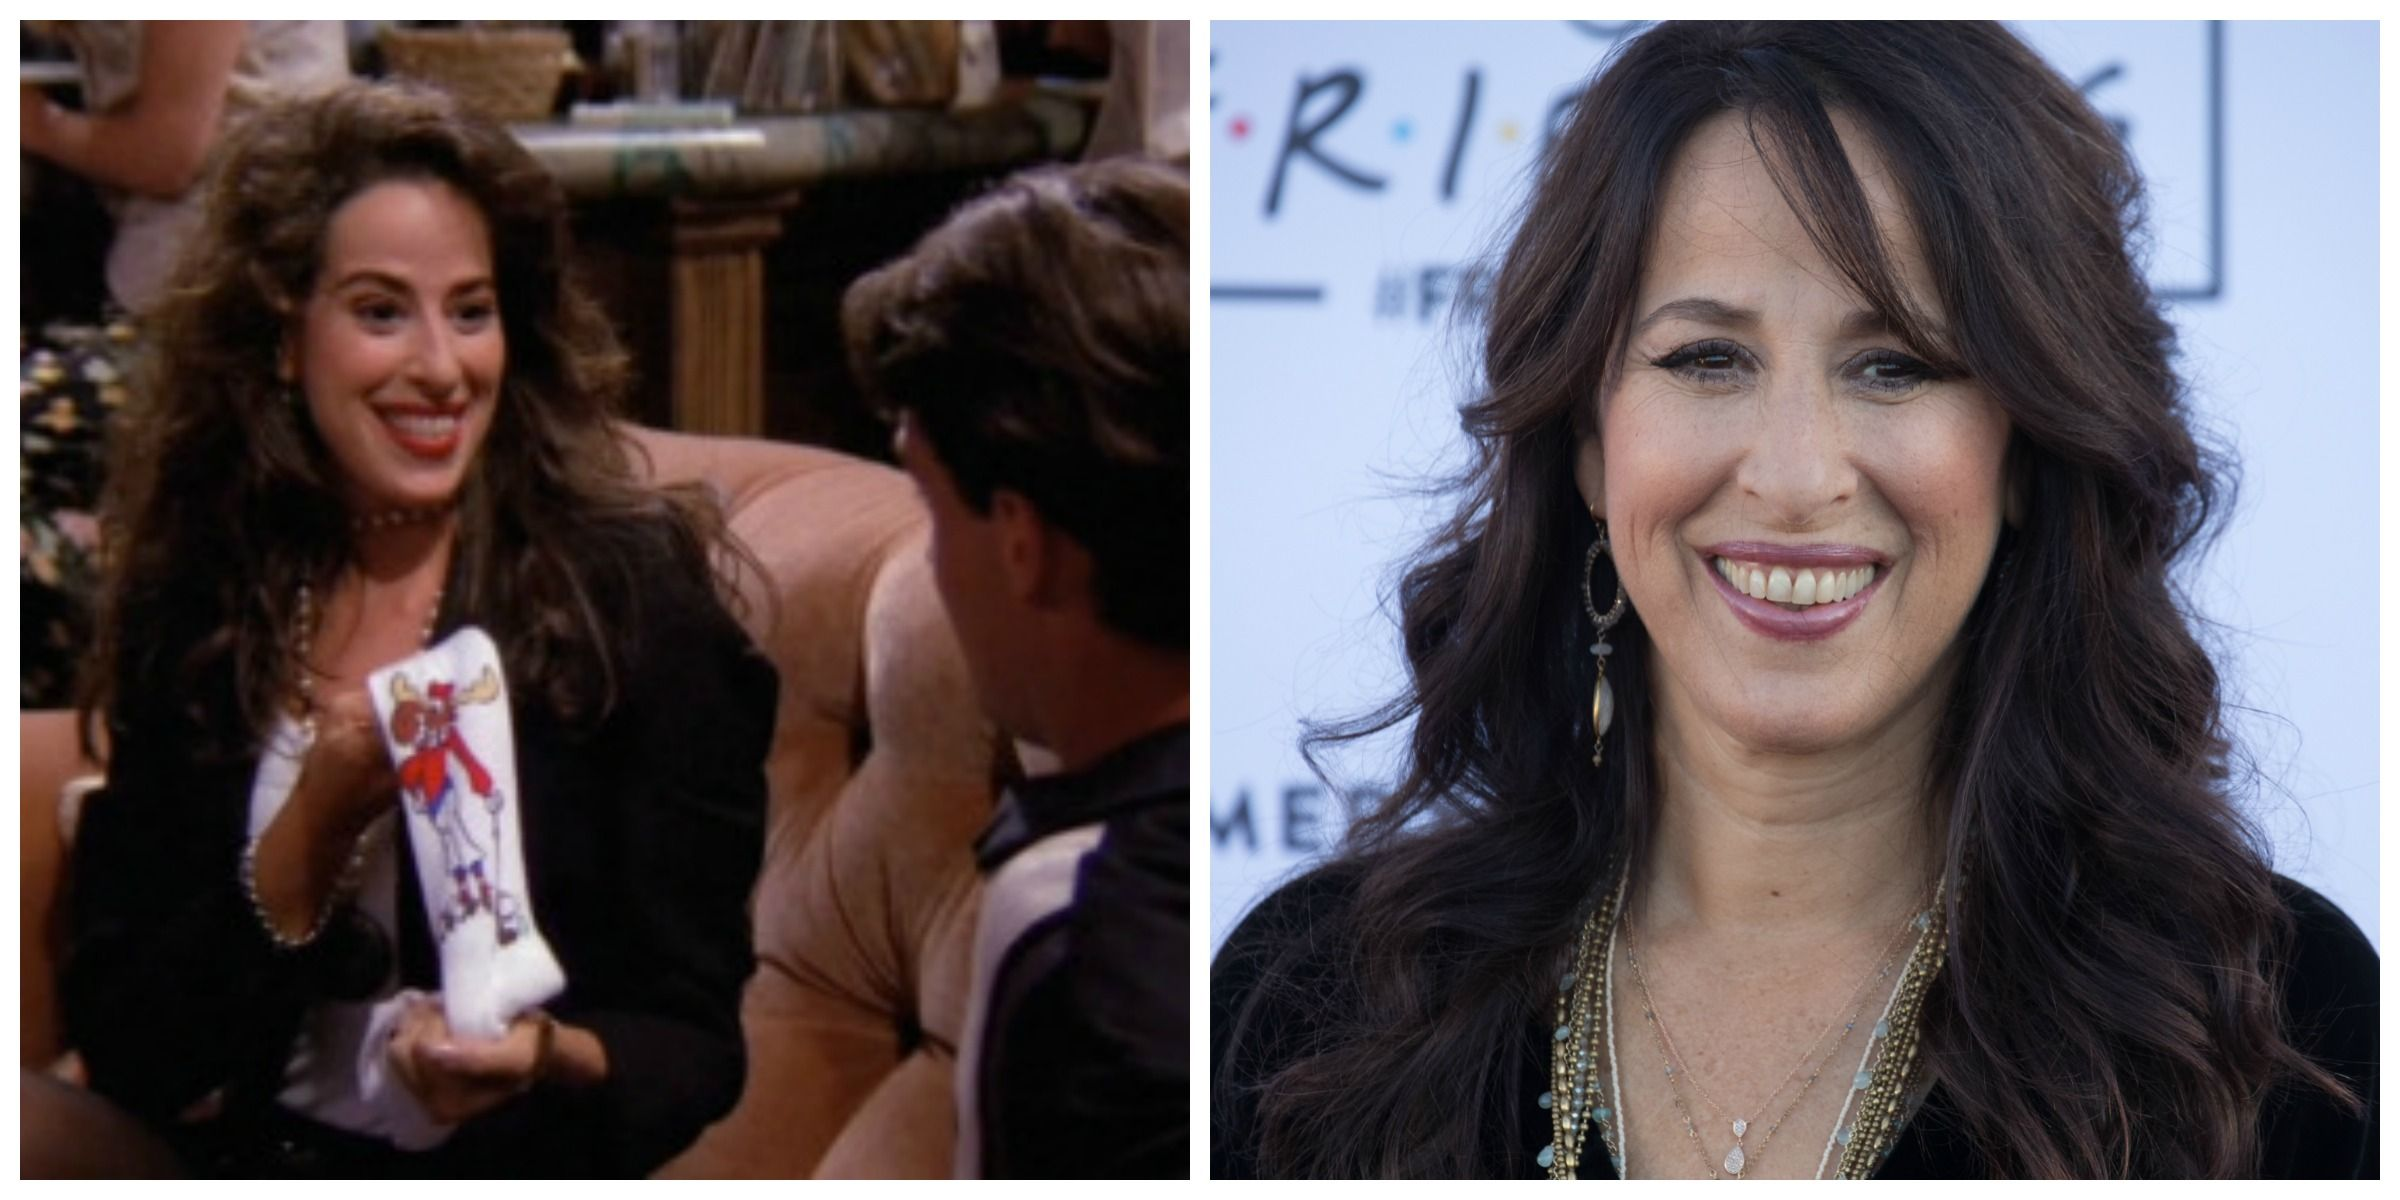 What The Cast Members Of Friends Looked Like In Their Very First